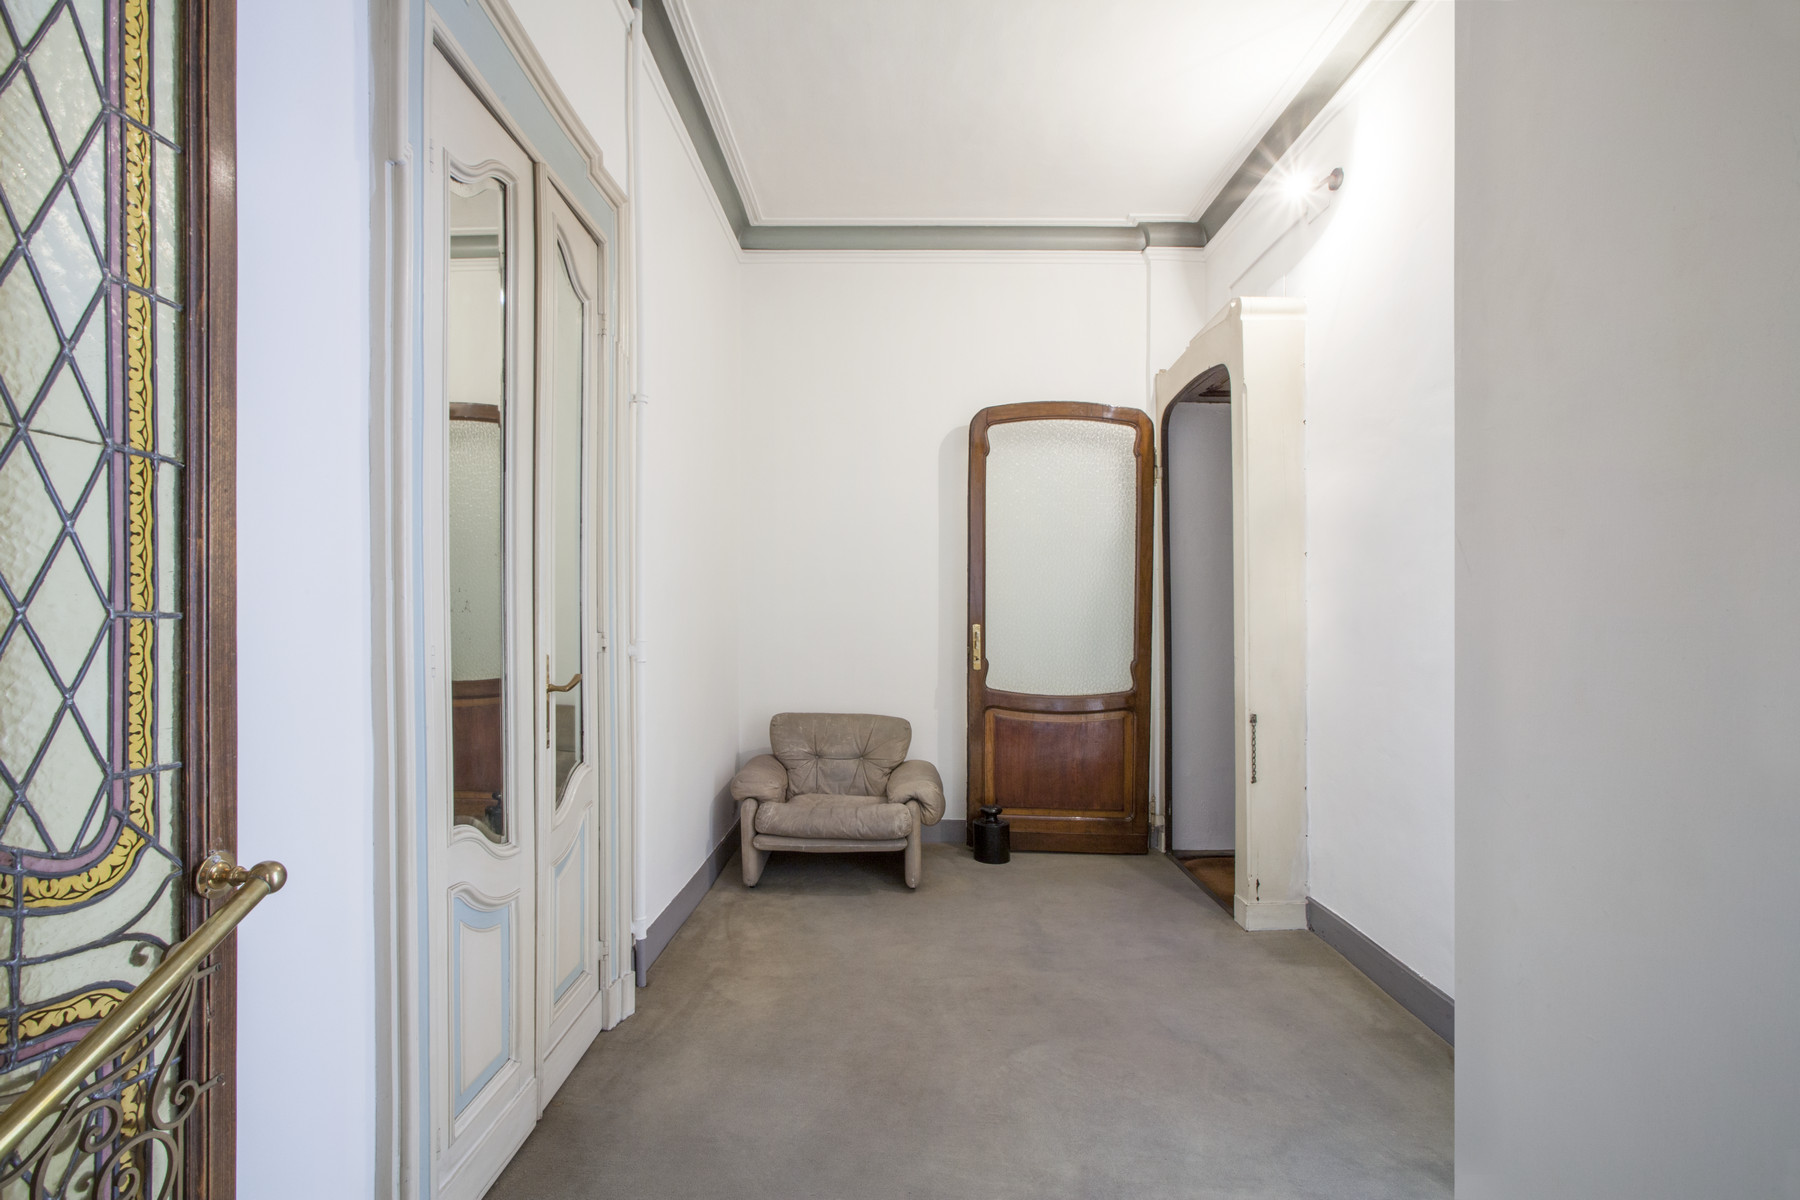 Additional photo for property listing at Exquisite apartment Art Nouveau style Via Duchessa Jolanda Torino, Turin 10138 Italia